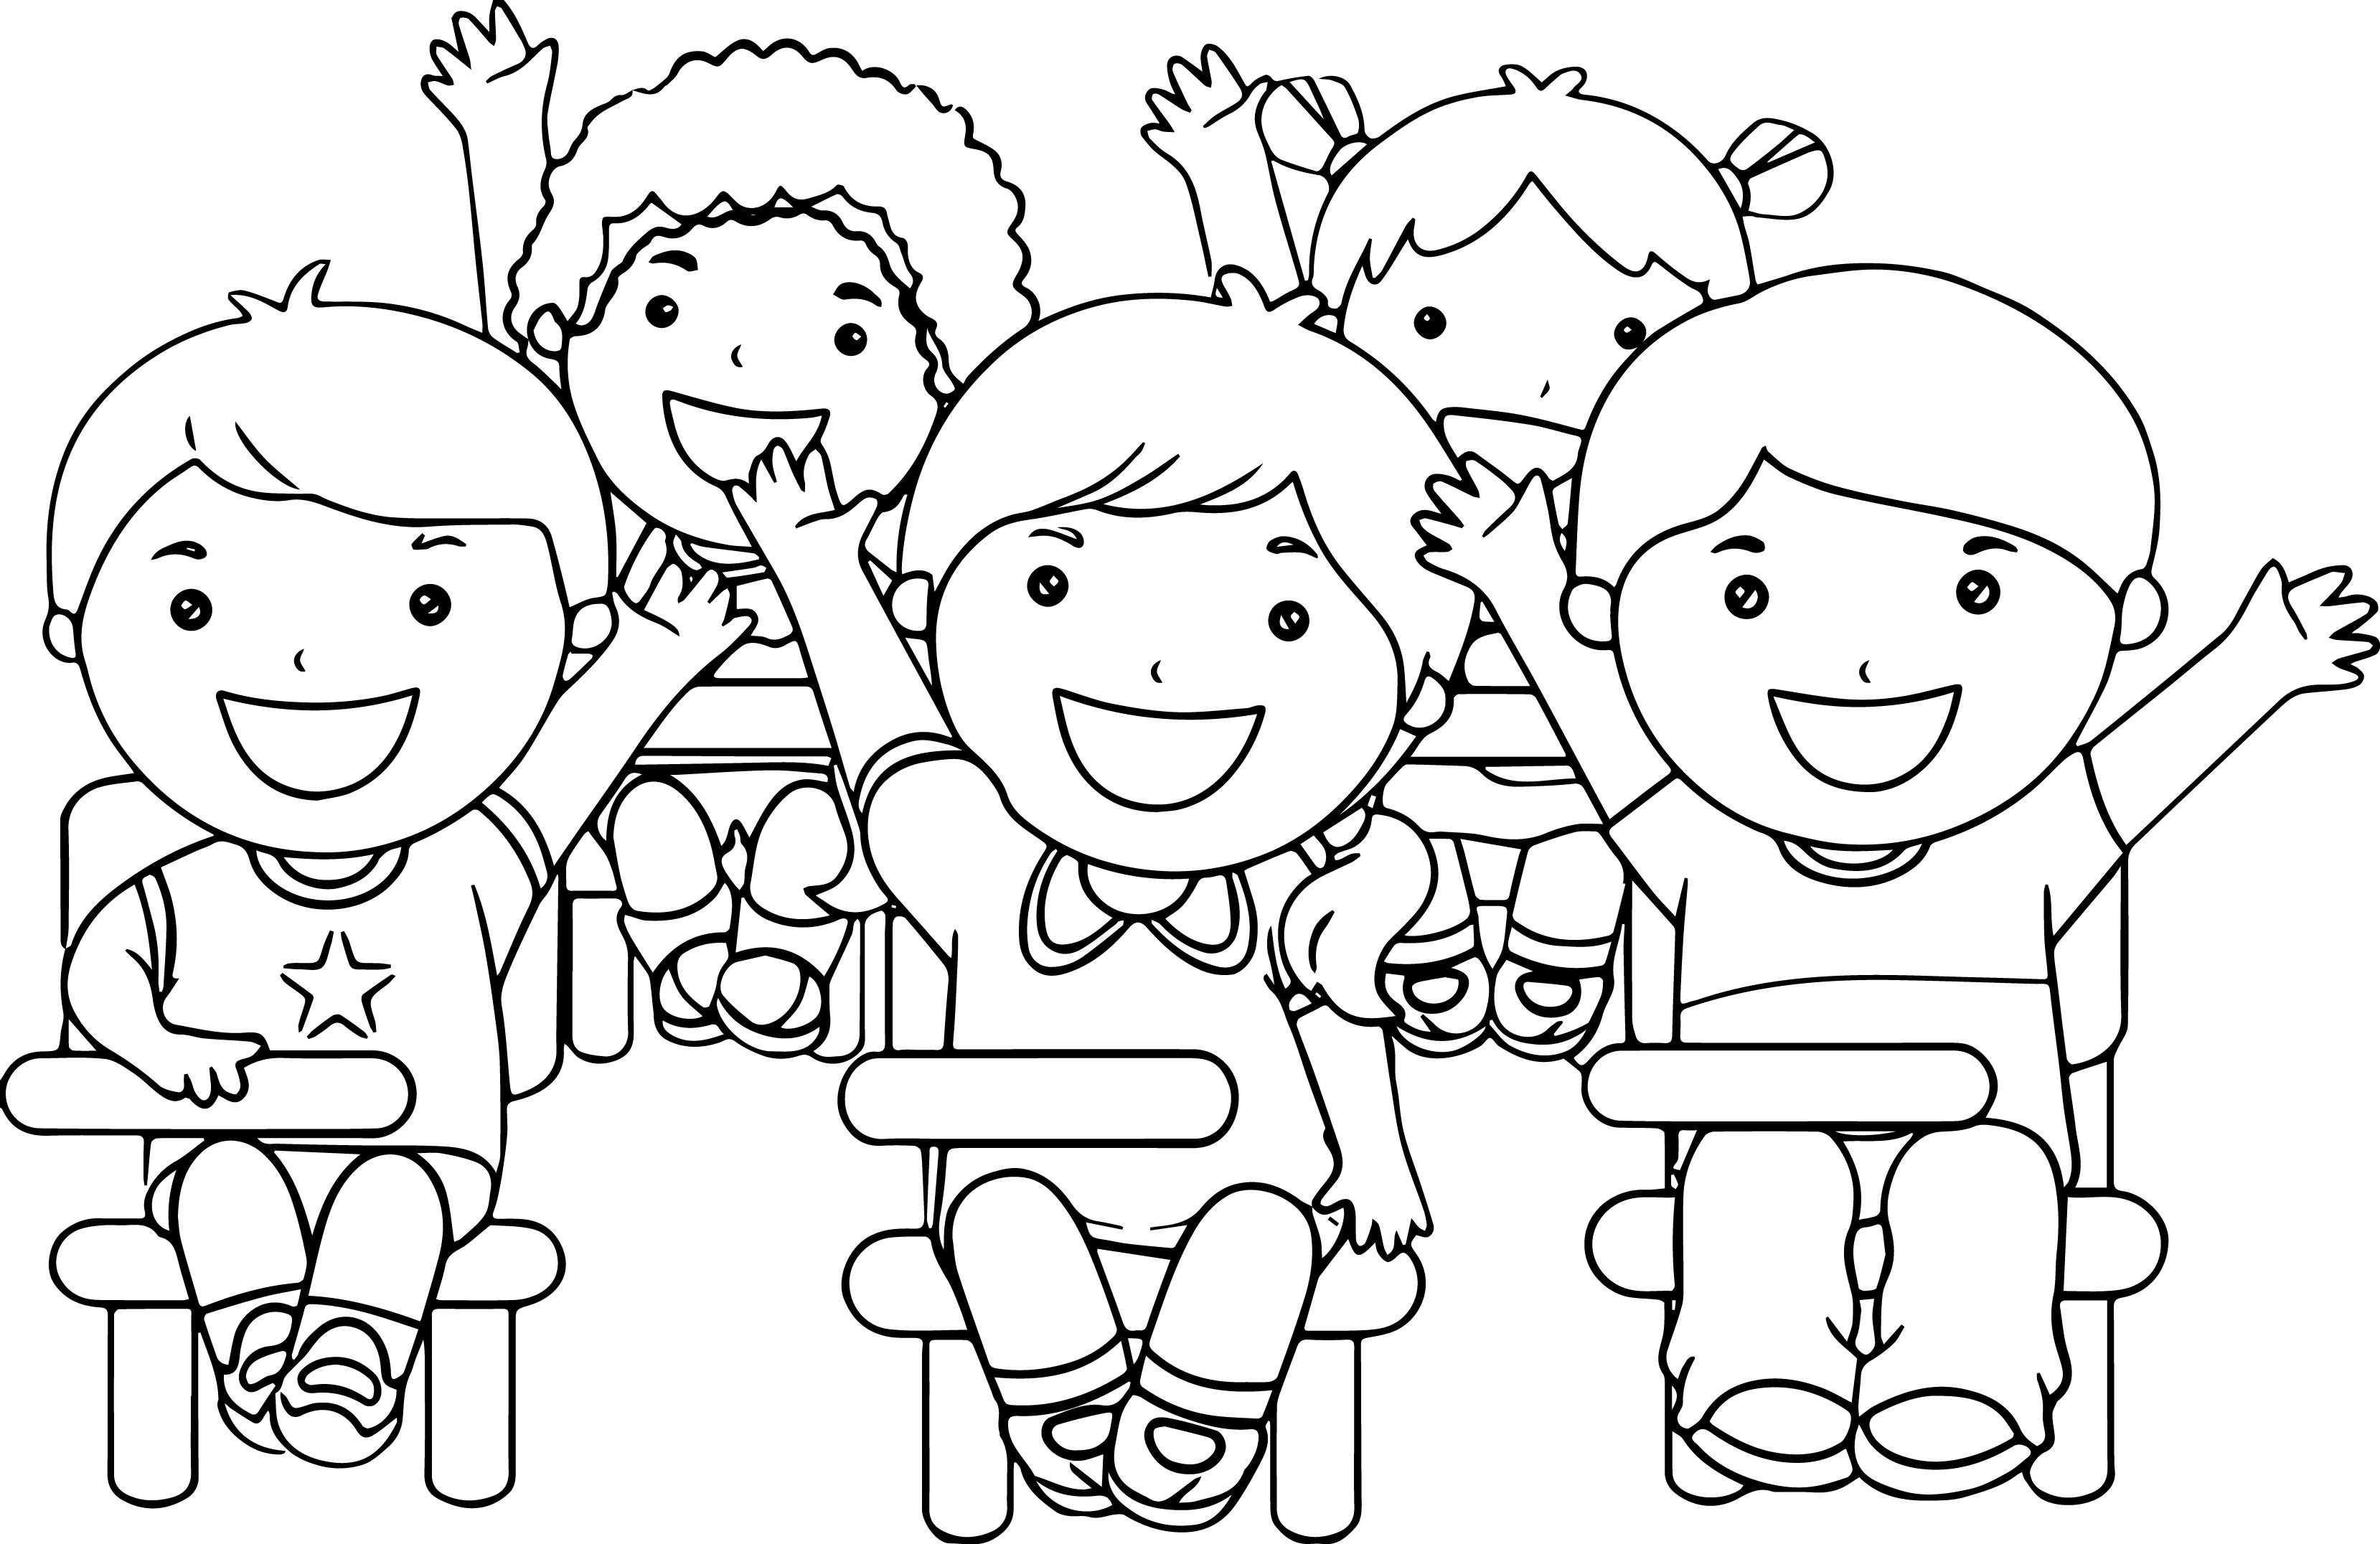 Coloring Pages for Kids to Print | Free Coloring Sheets